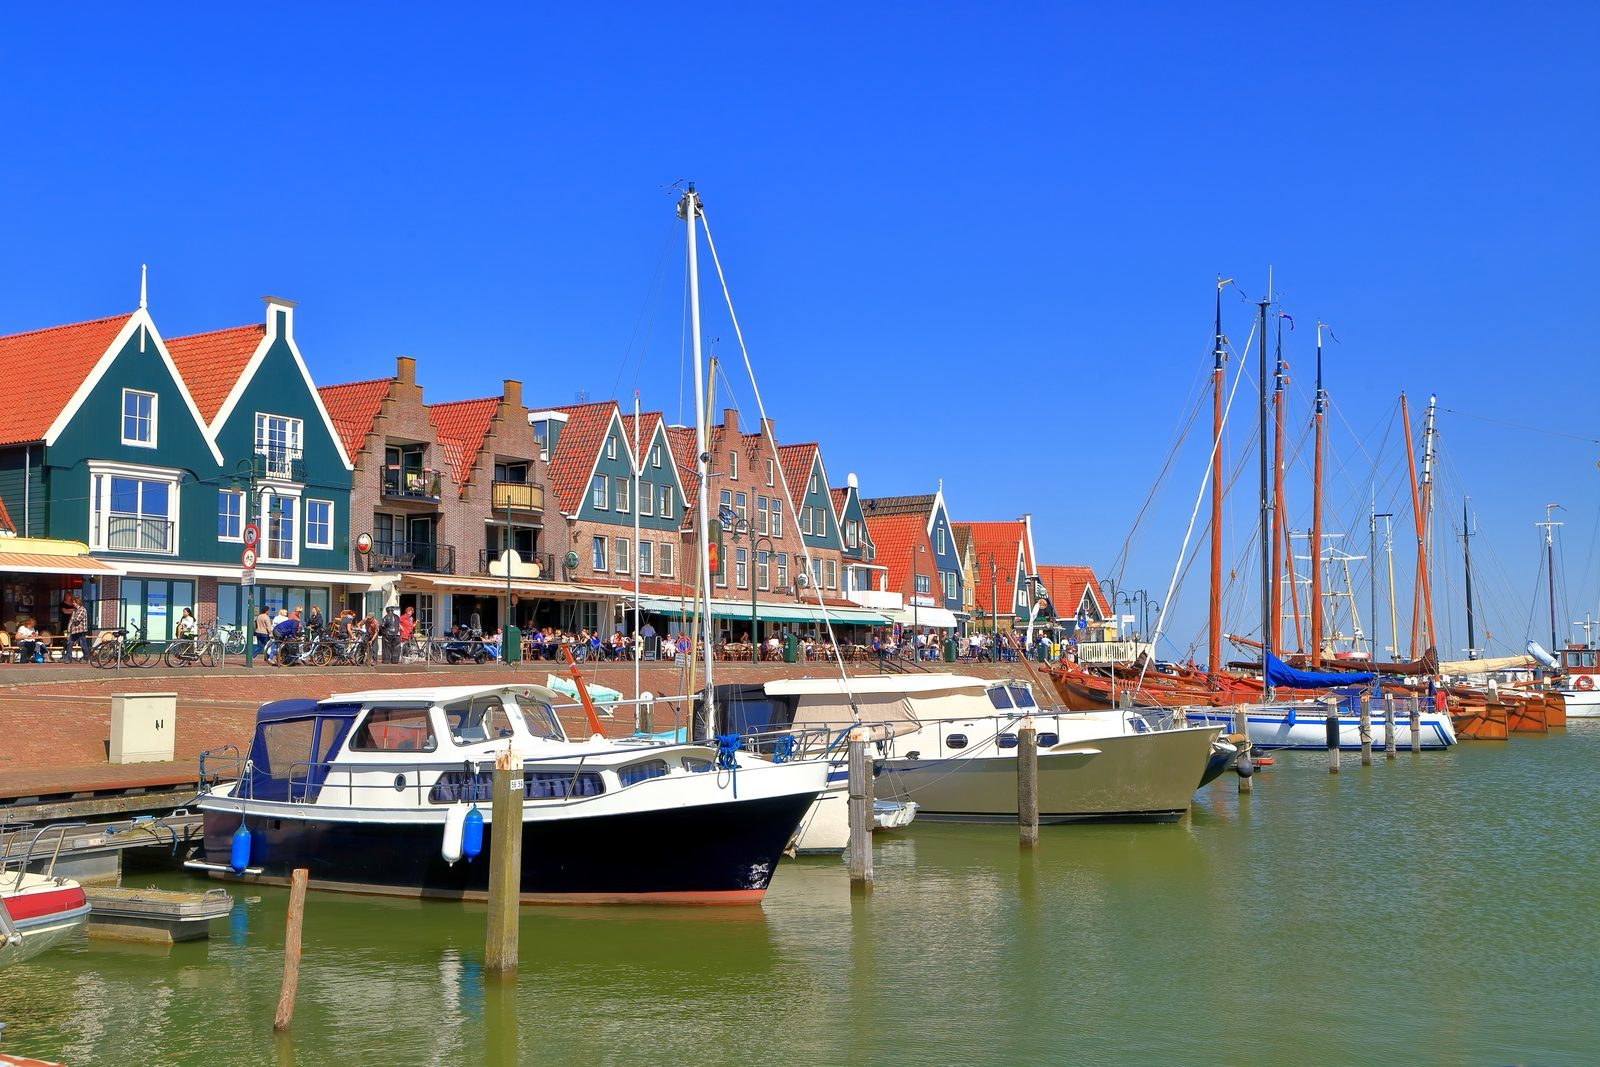 Trend for 2020: Dutch travelers will opt for Second City